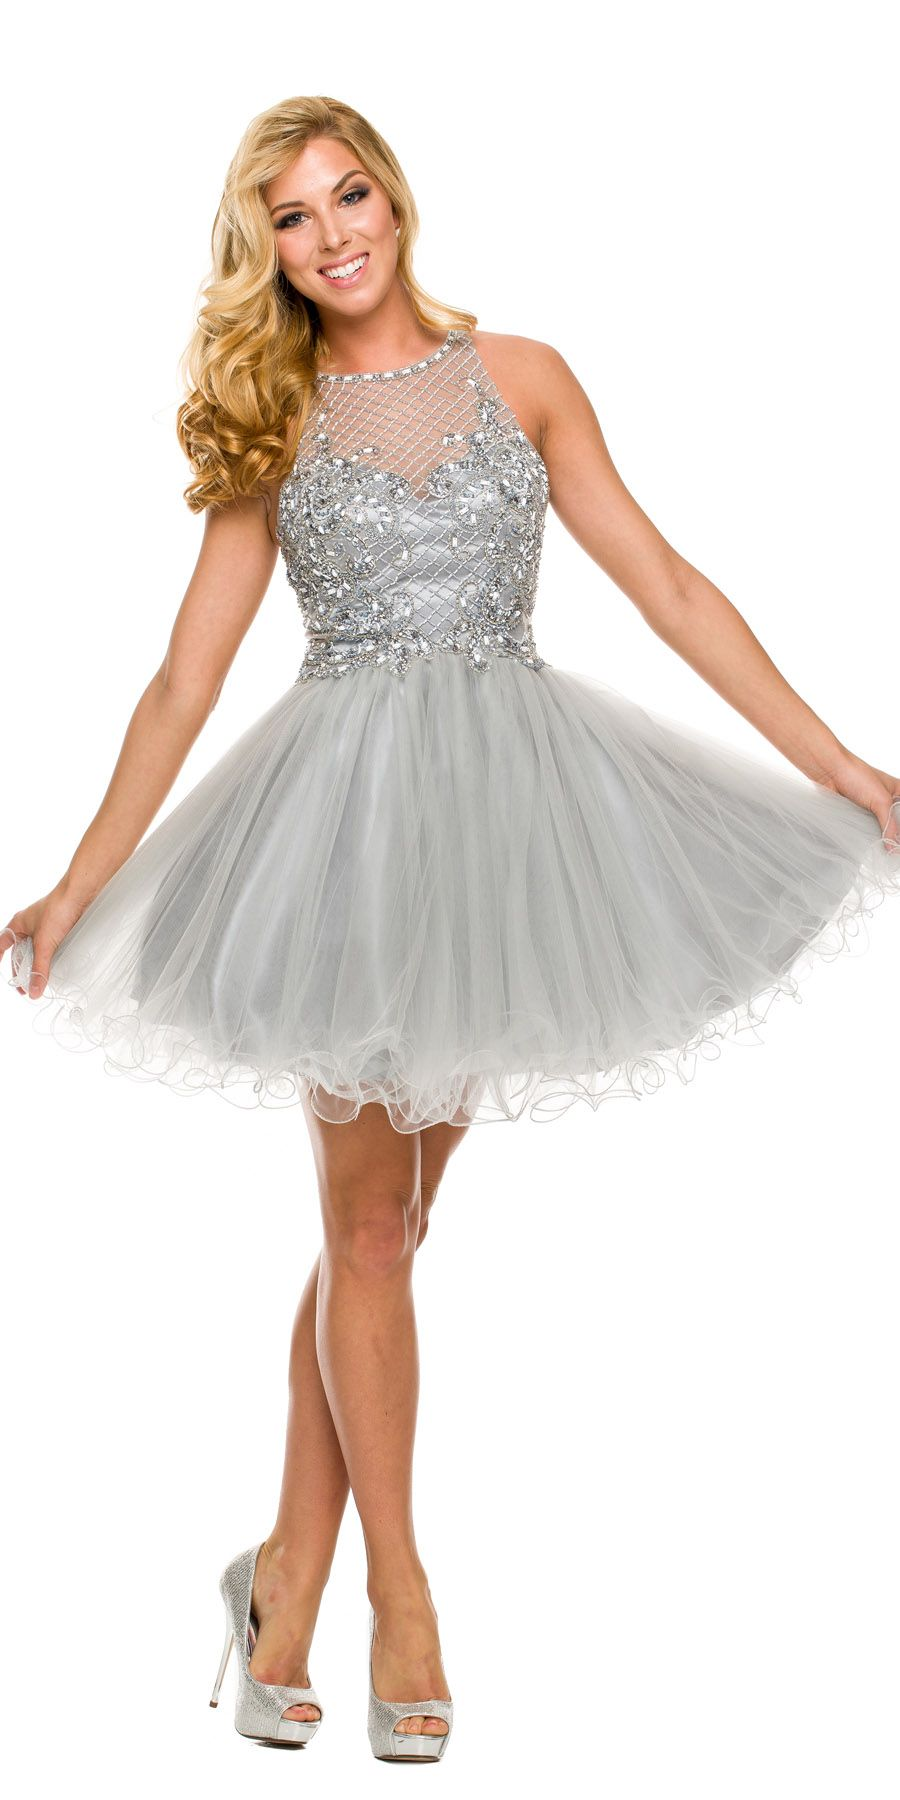 a587bef78d22 Short Poofy Silver Tulle Skirt Homecoming Dress #discountdressshop  #silverdress #homecoming #shortpromdress #poofydress